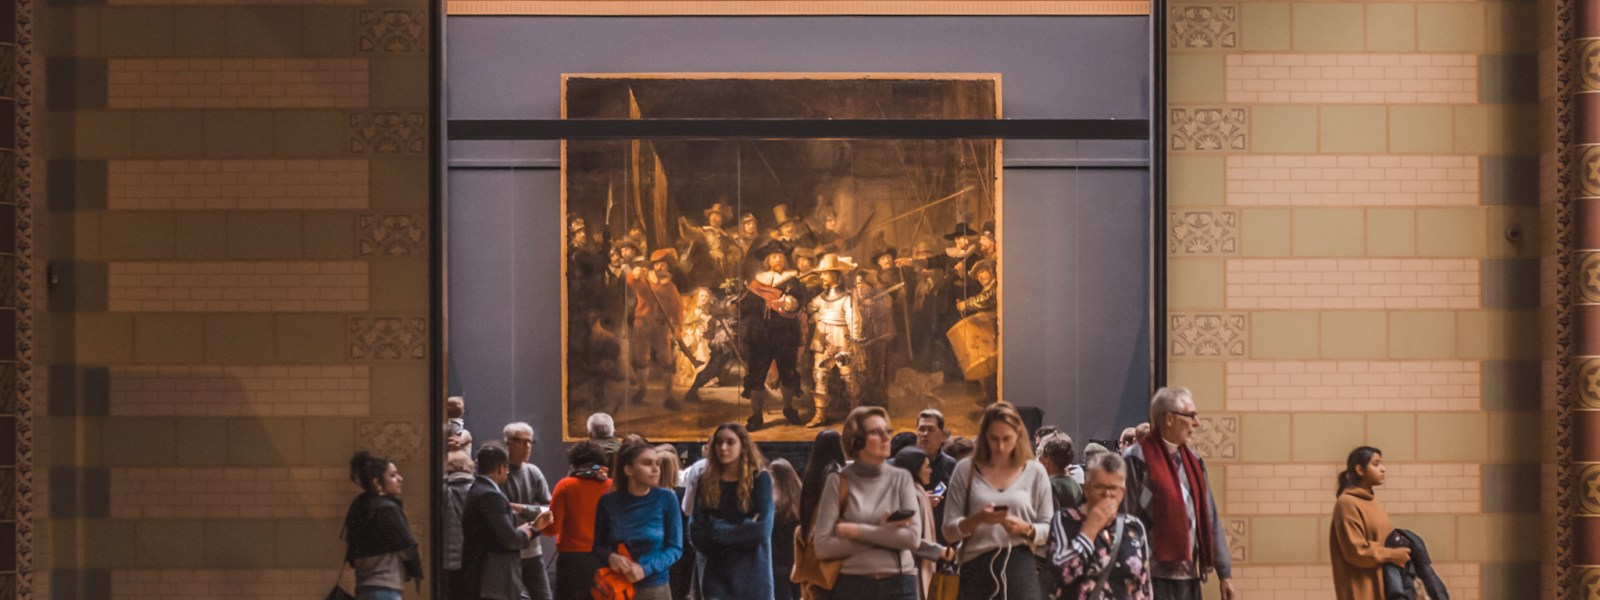 The Rijksmuseum highlights: 10 must-see paintings and artworks